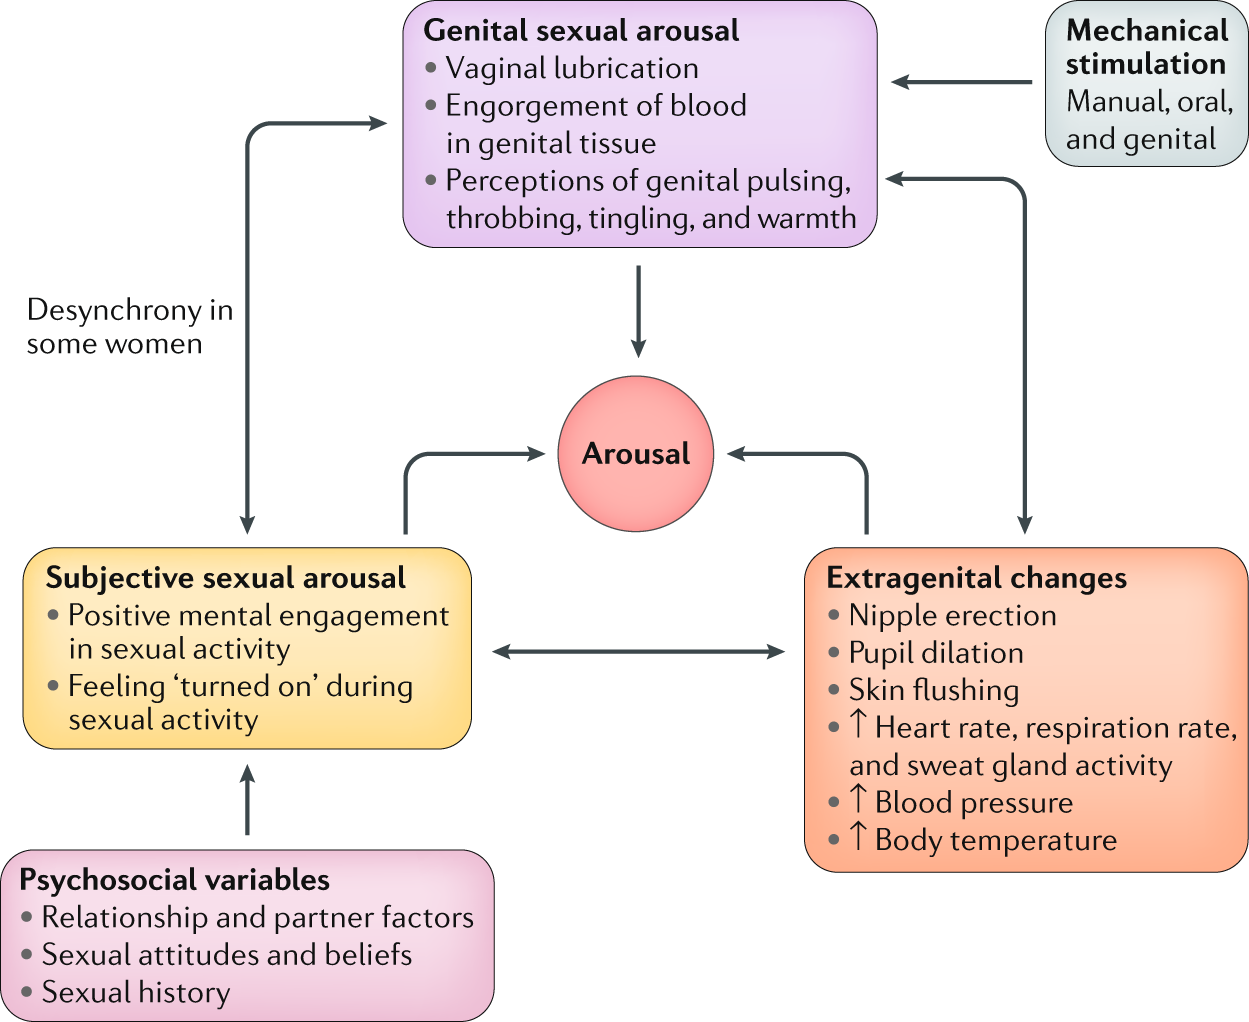 Understanding sexual arousal and subjective–genital arousal desynchrony in  women | Nature Reviews Urology